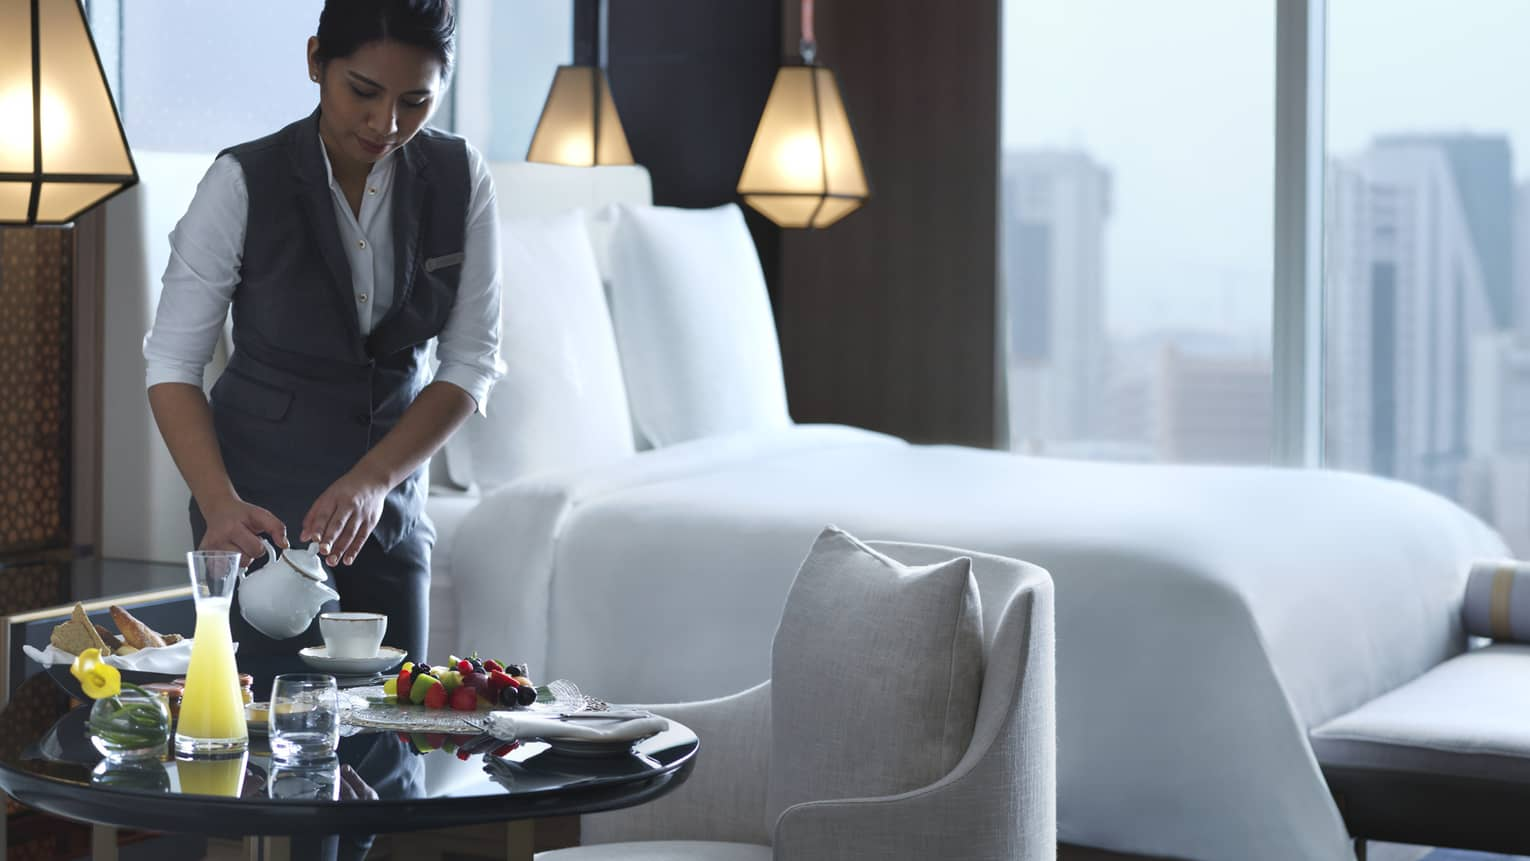 Woman in hotel suite pours tea into a white teacup next to a plate of fruit and bread.